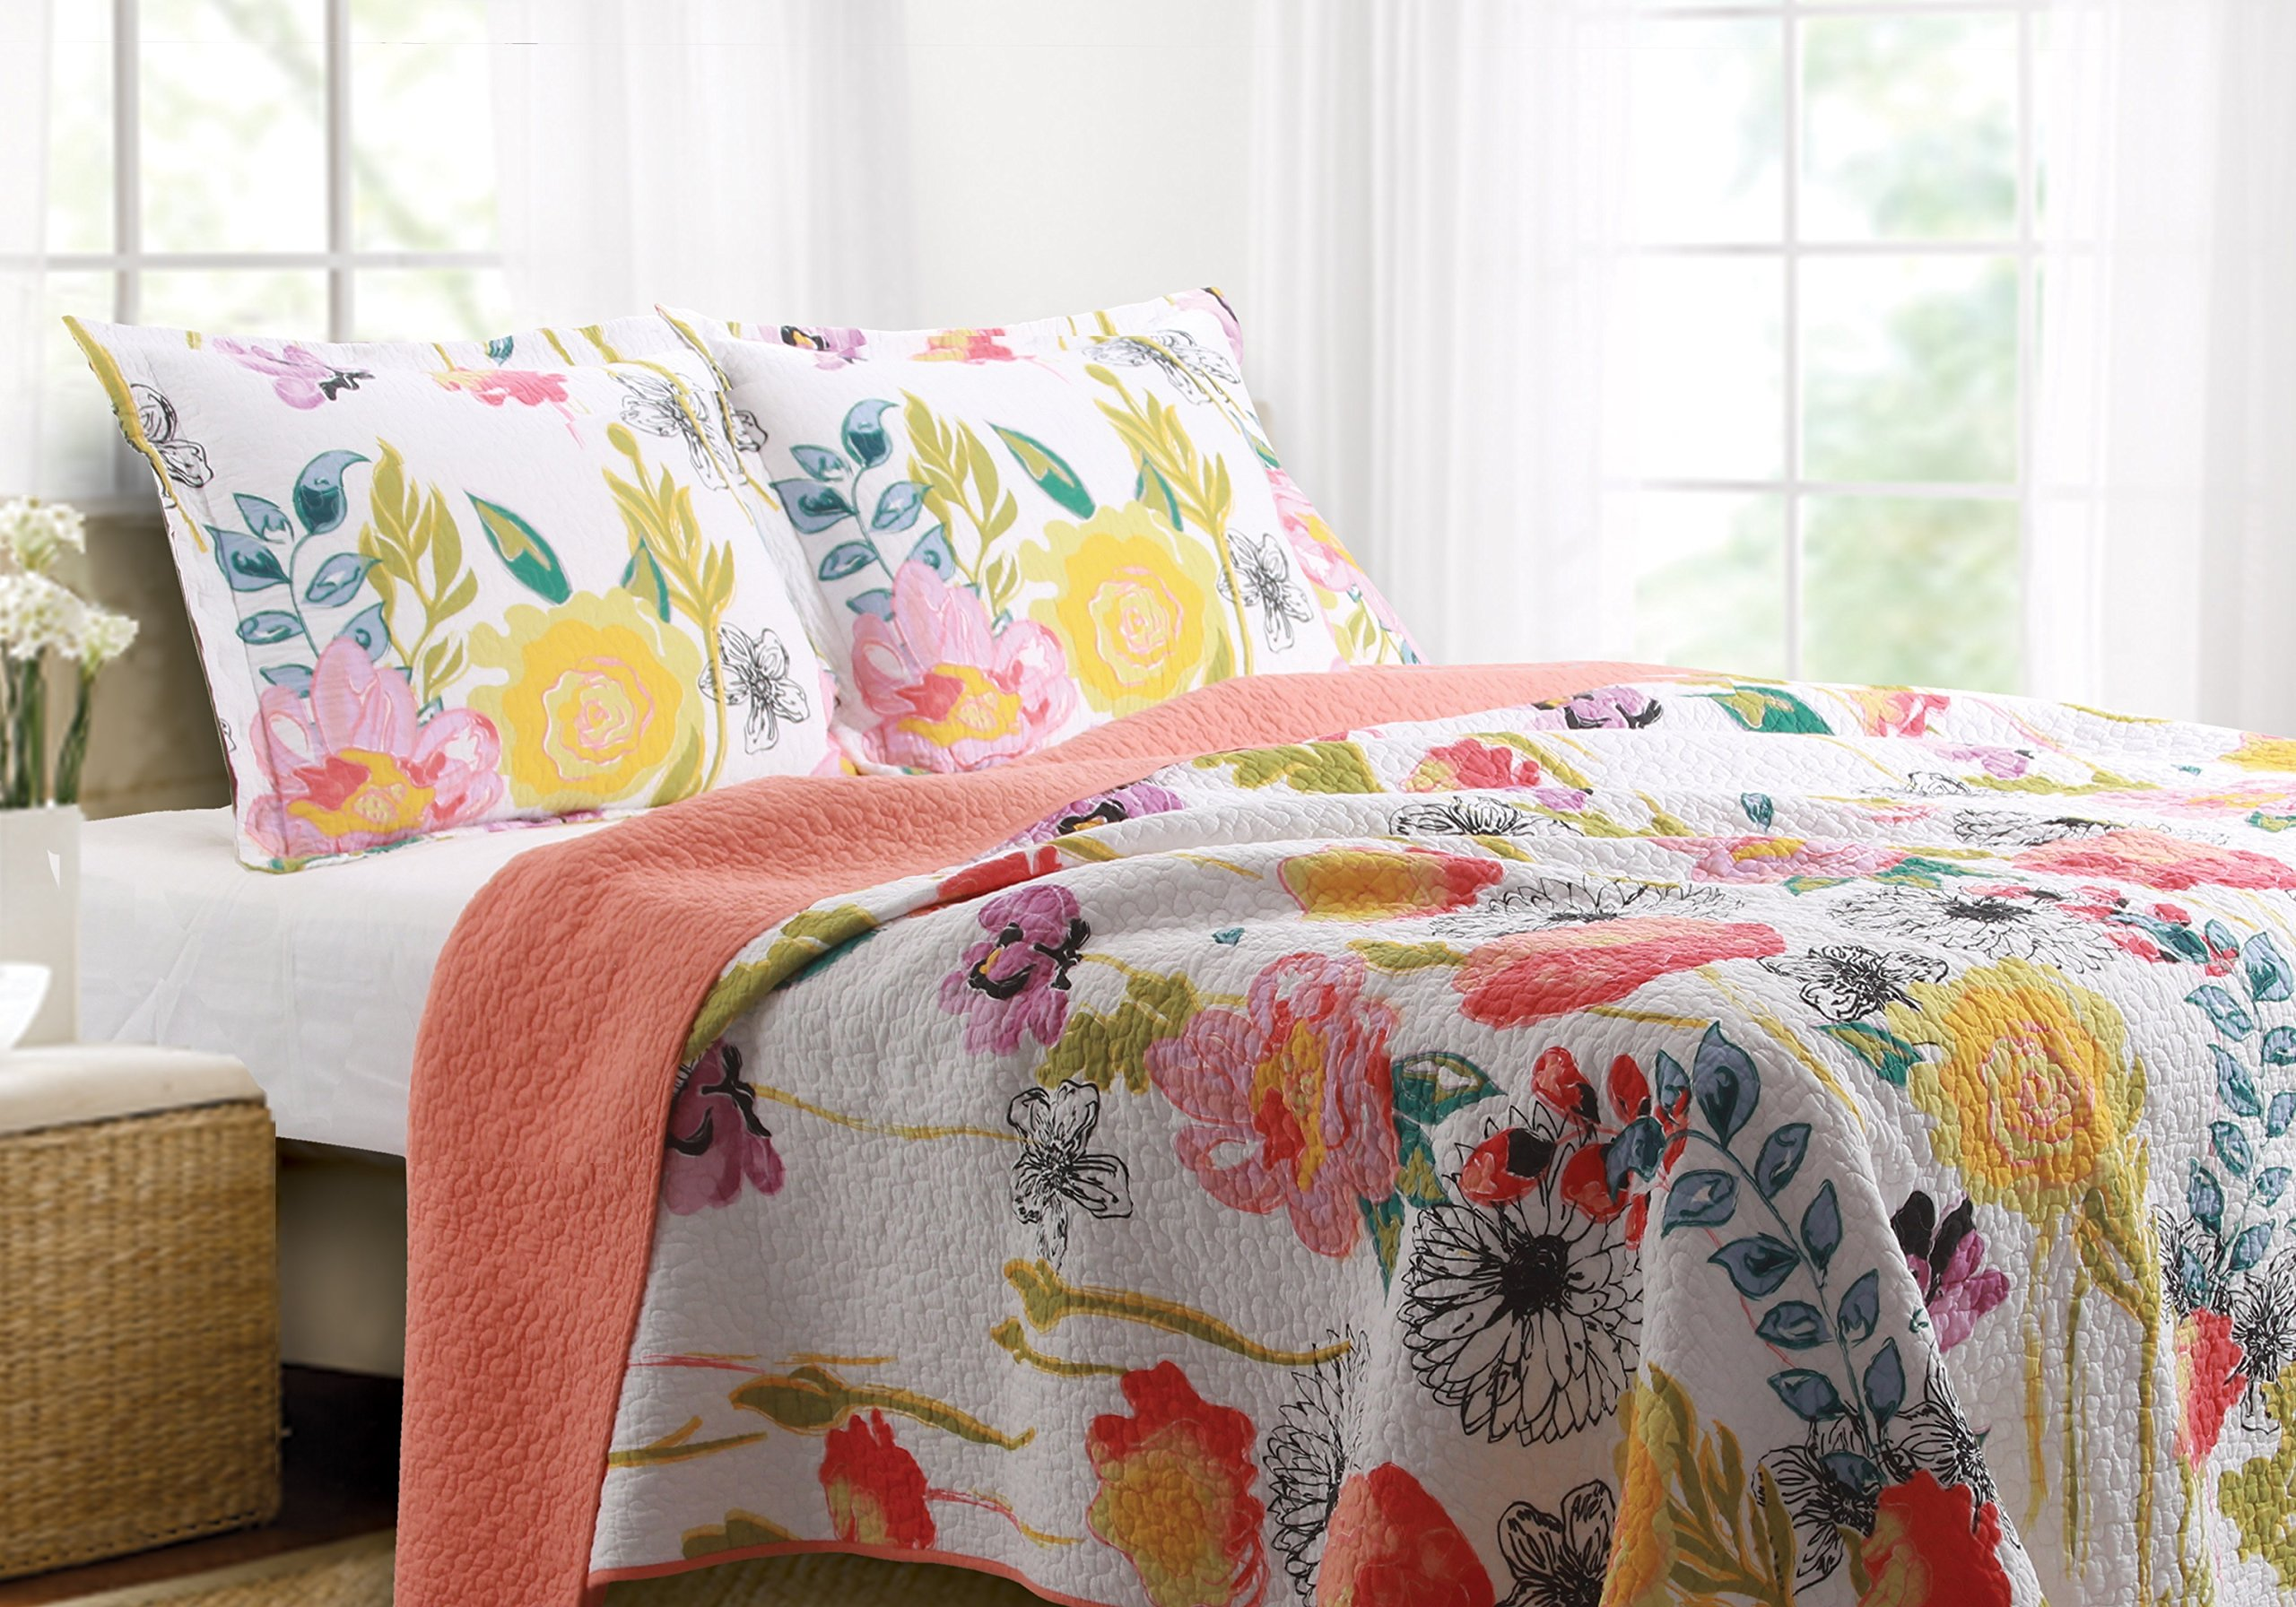 Greenland Home 3-Piece Watercolor Dream Quilt Set, King, Multi by Greenland Home